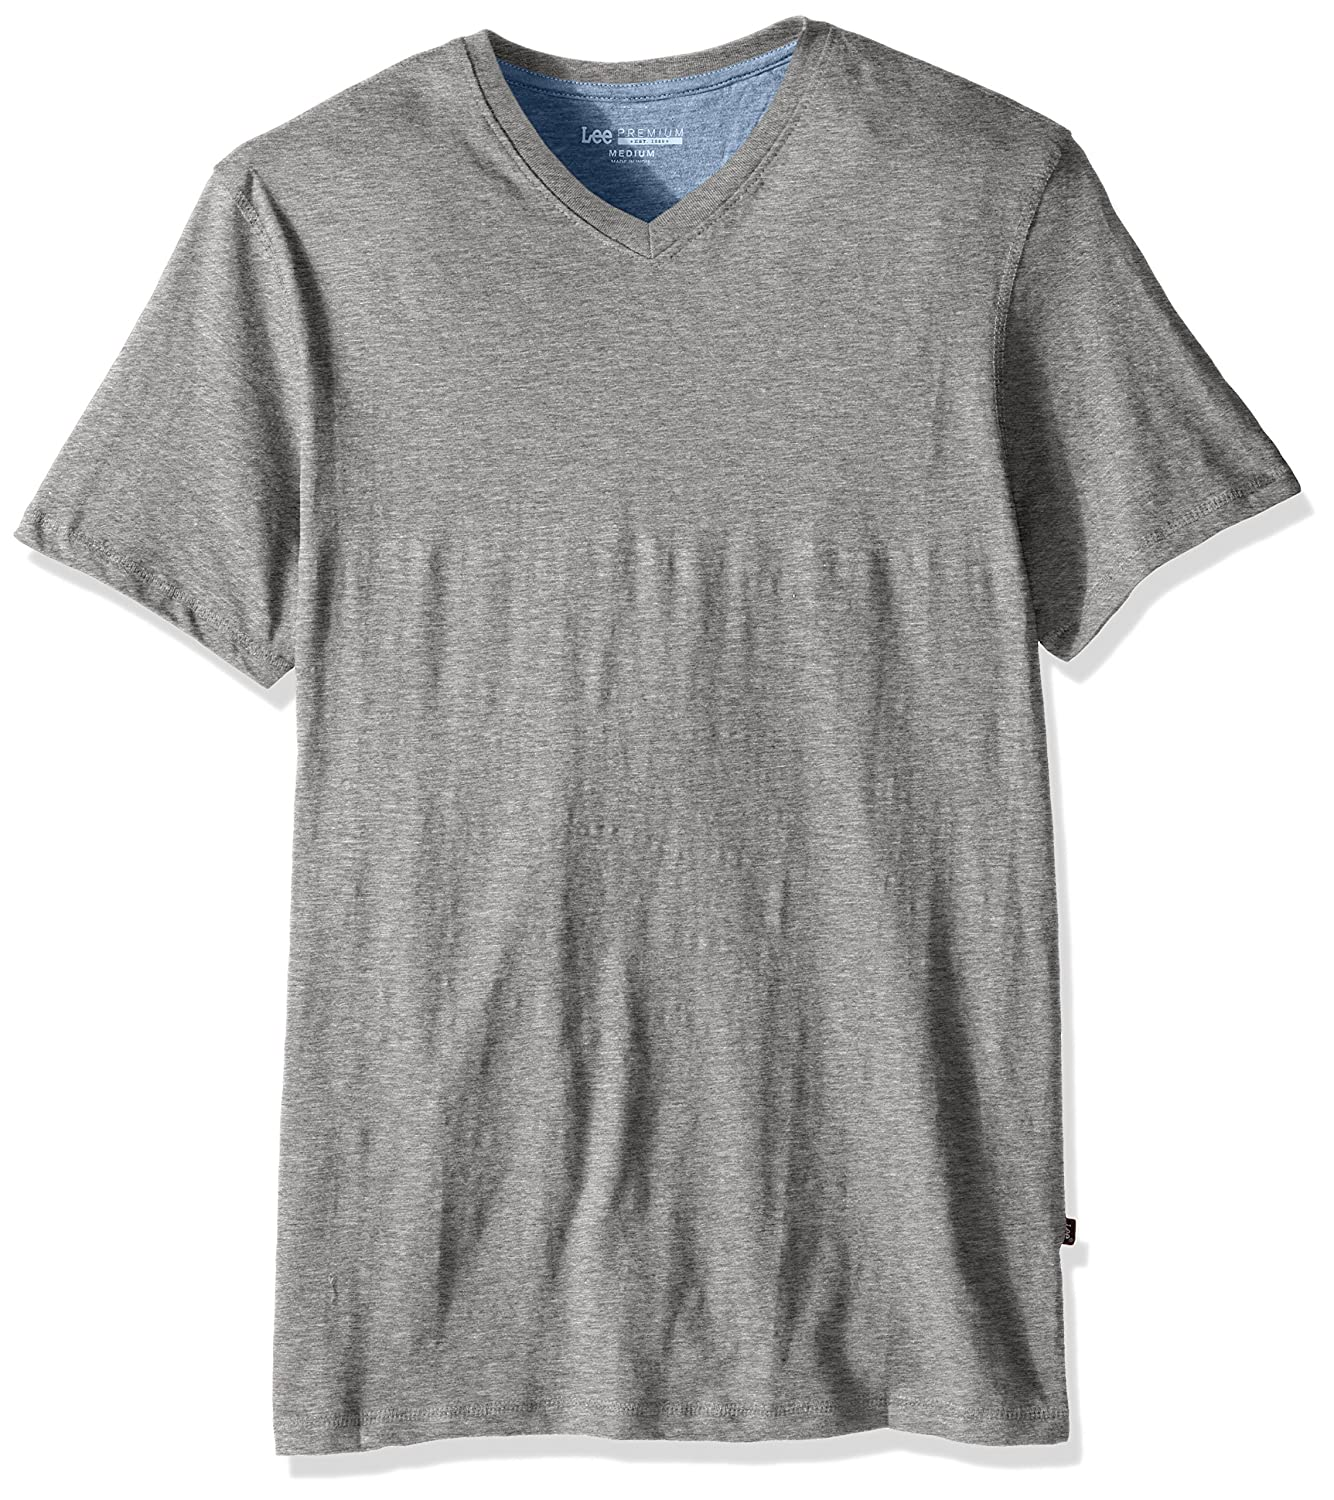 LEE Mens Big and Tall The Everyday Tee